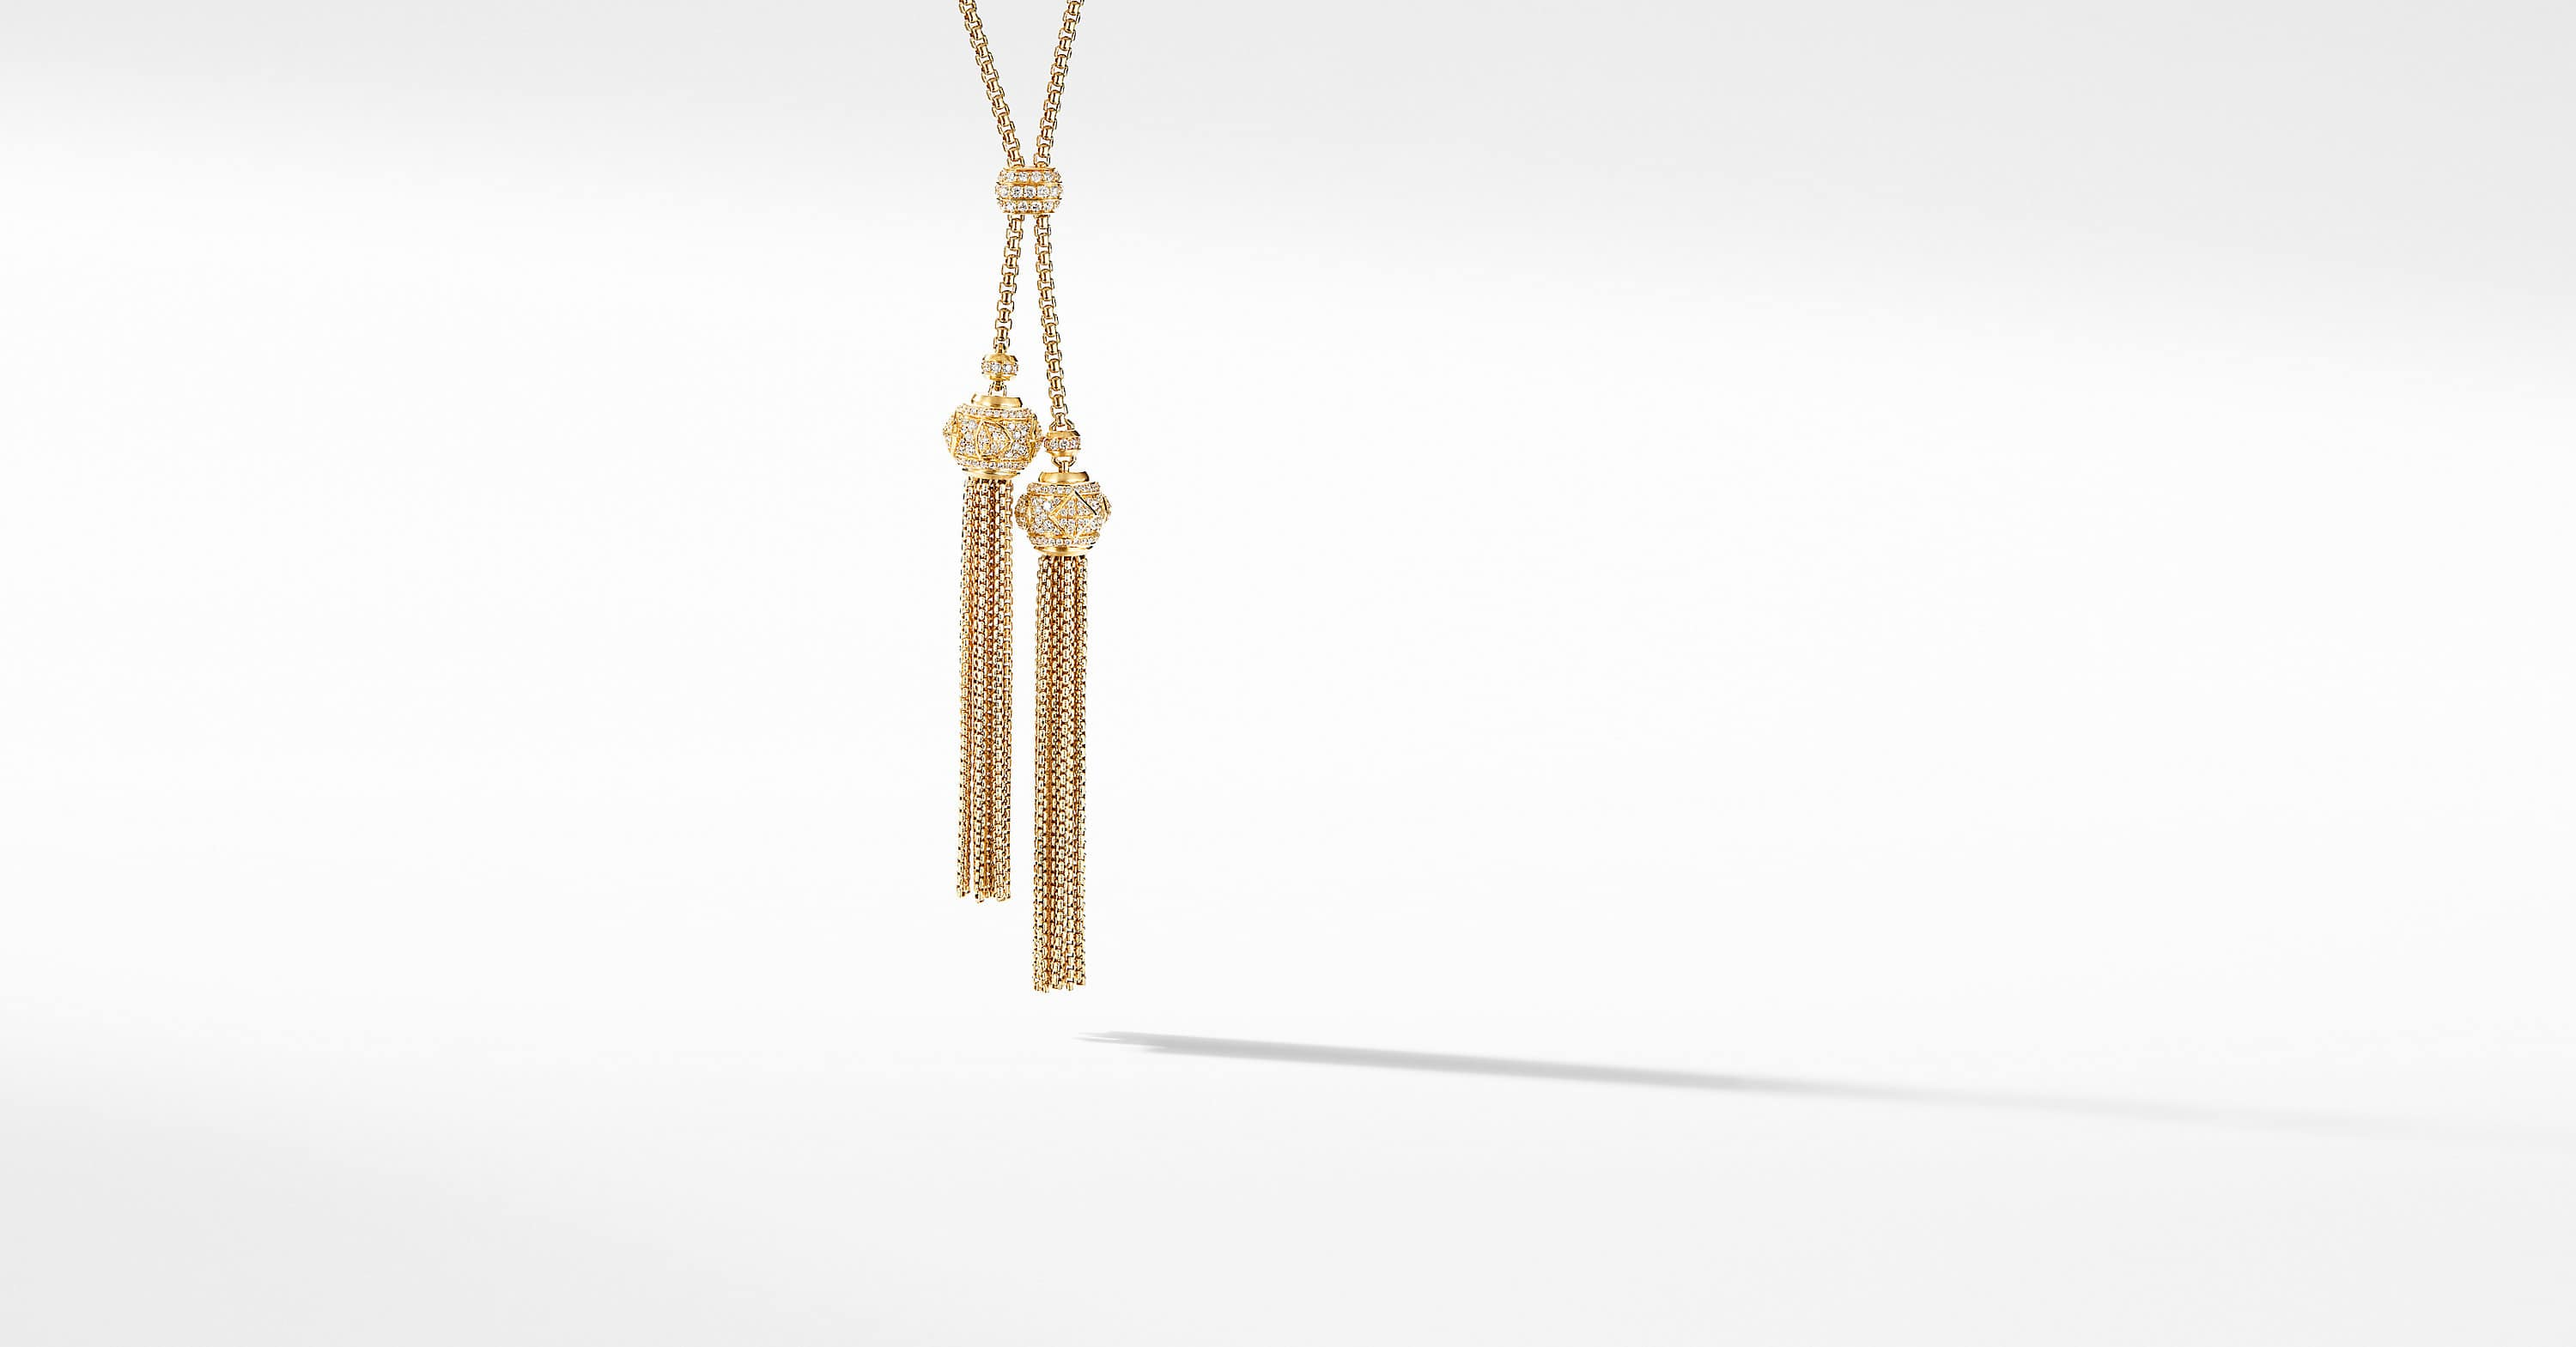 Renaissance Tassel Necklace in 18K Yellow Gold with Full Pavé